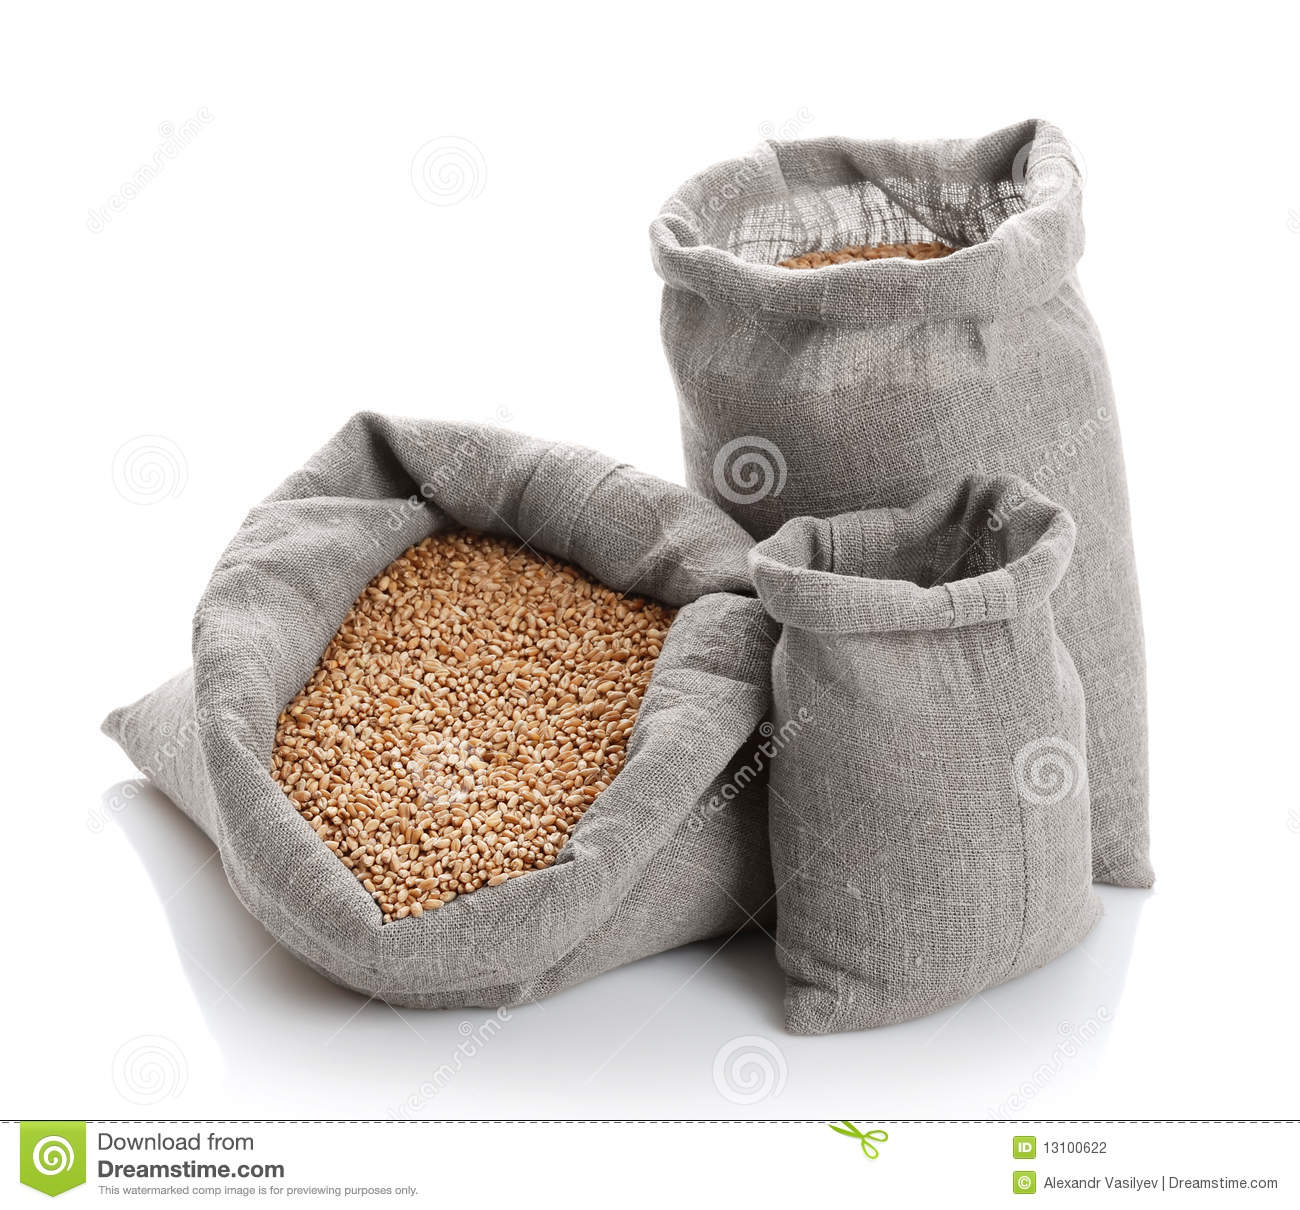 More Similar Stock Images Of   Grain Of The Wheat In Bags